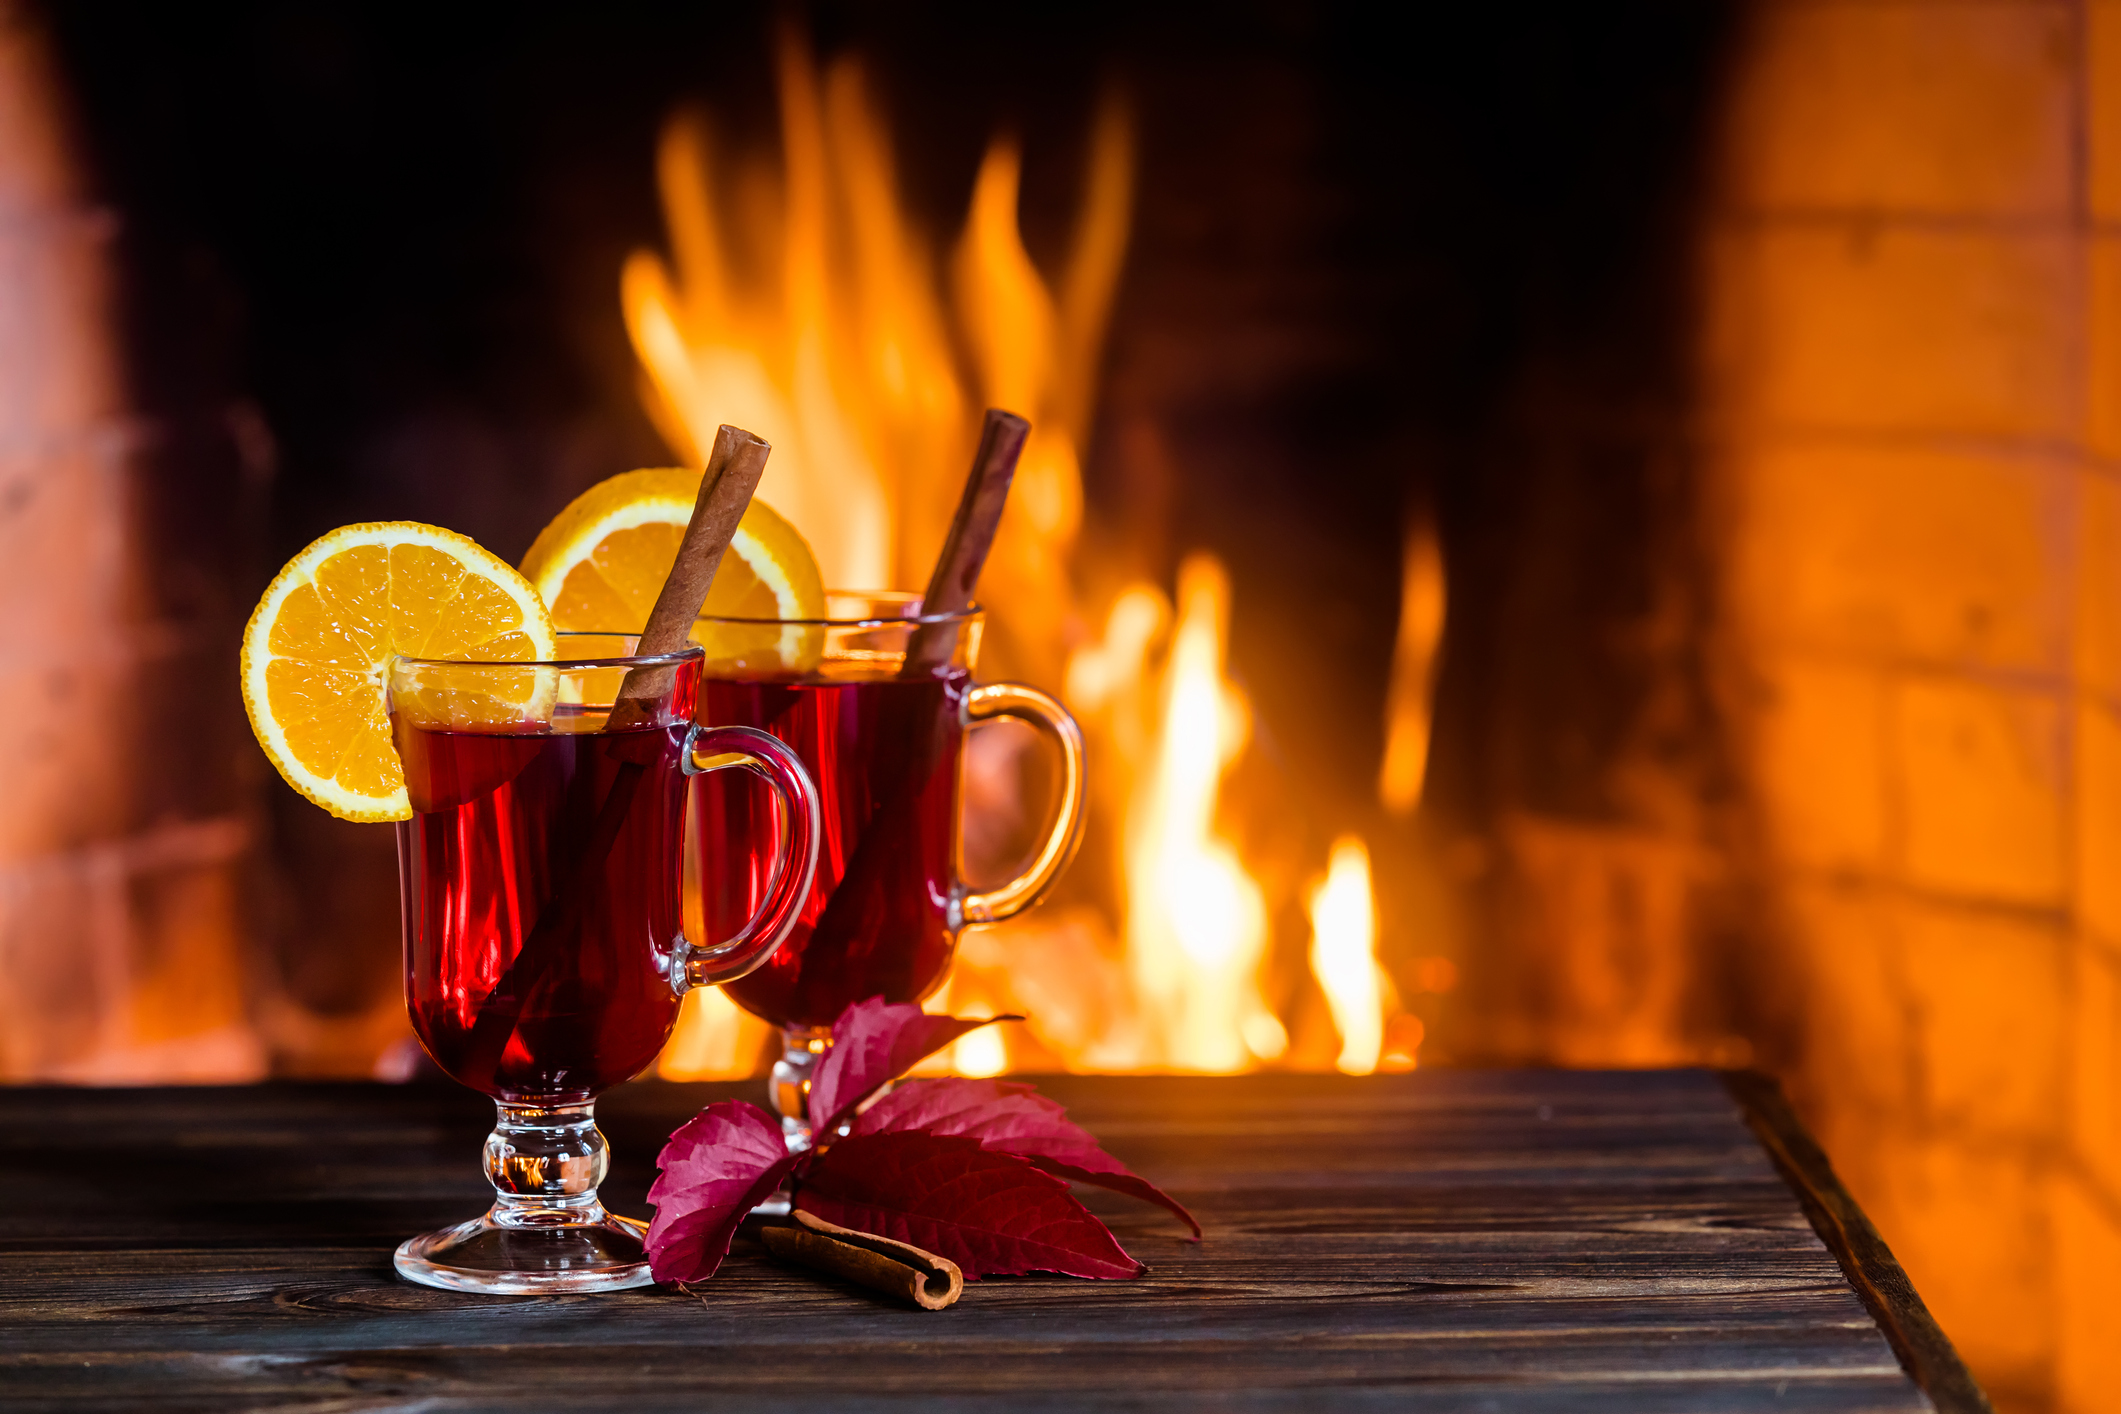 5. Mulled Wine